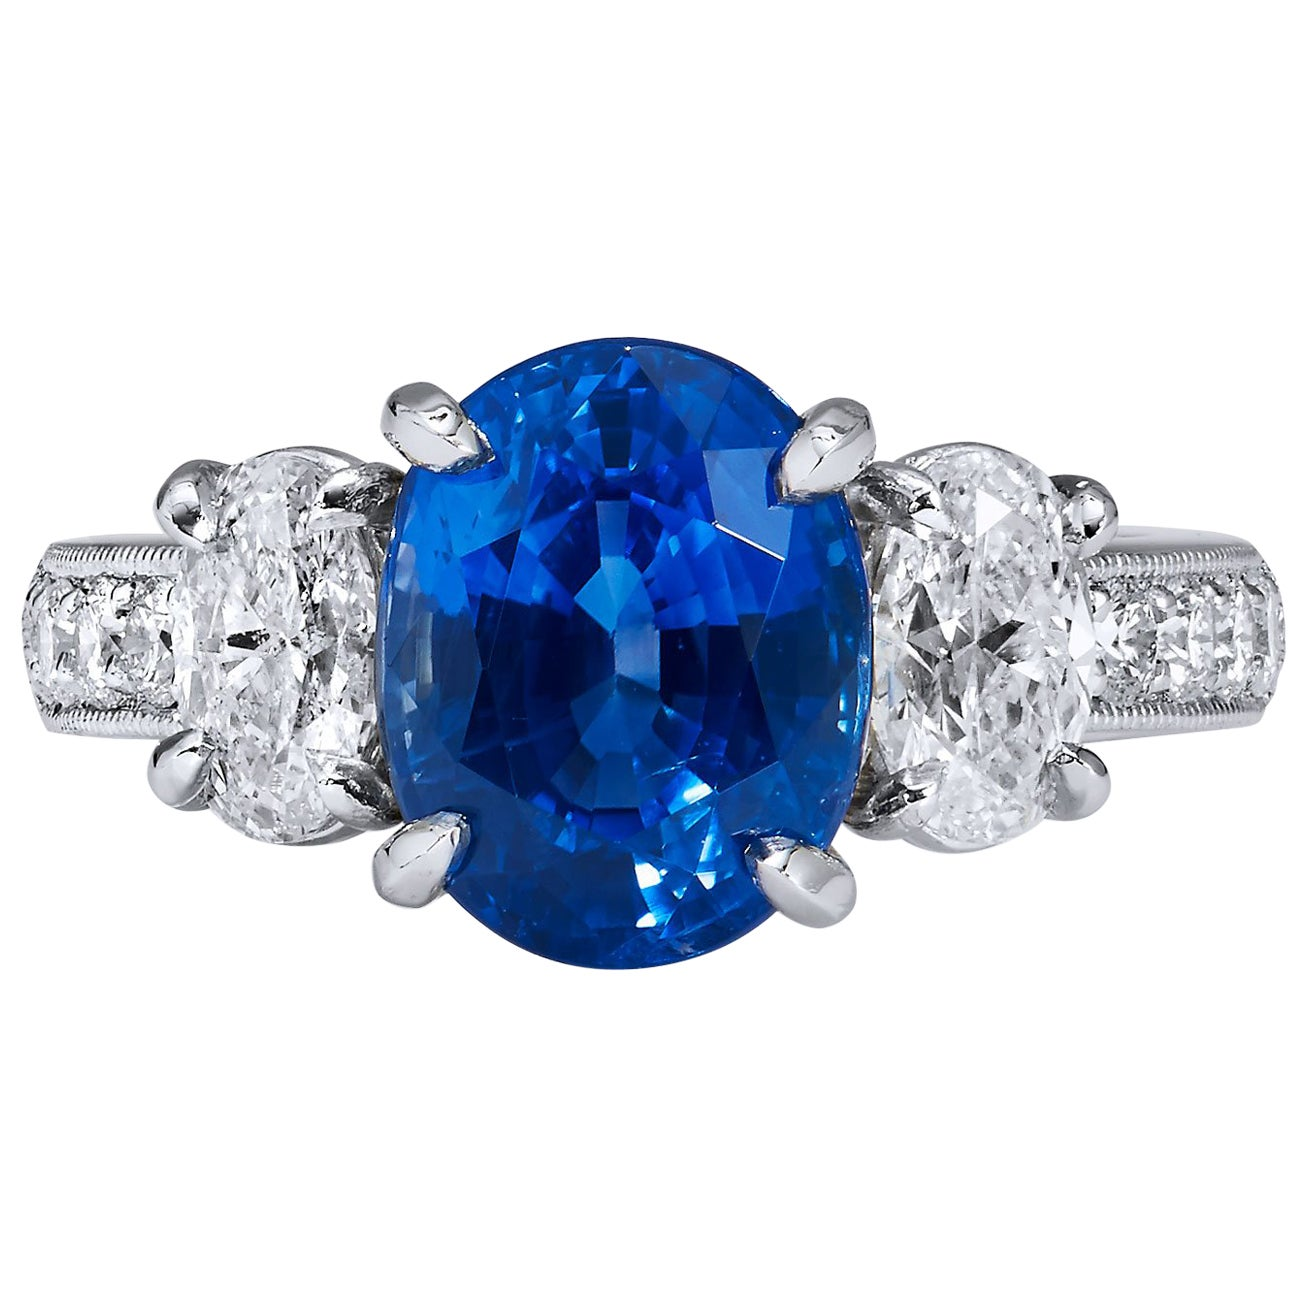 GIA Certified 4.32 Carat Madagascar Blue Sapphire and Diamond Platinum Ring